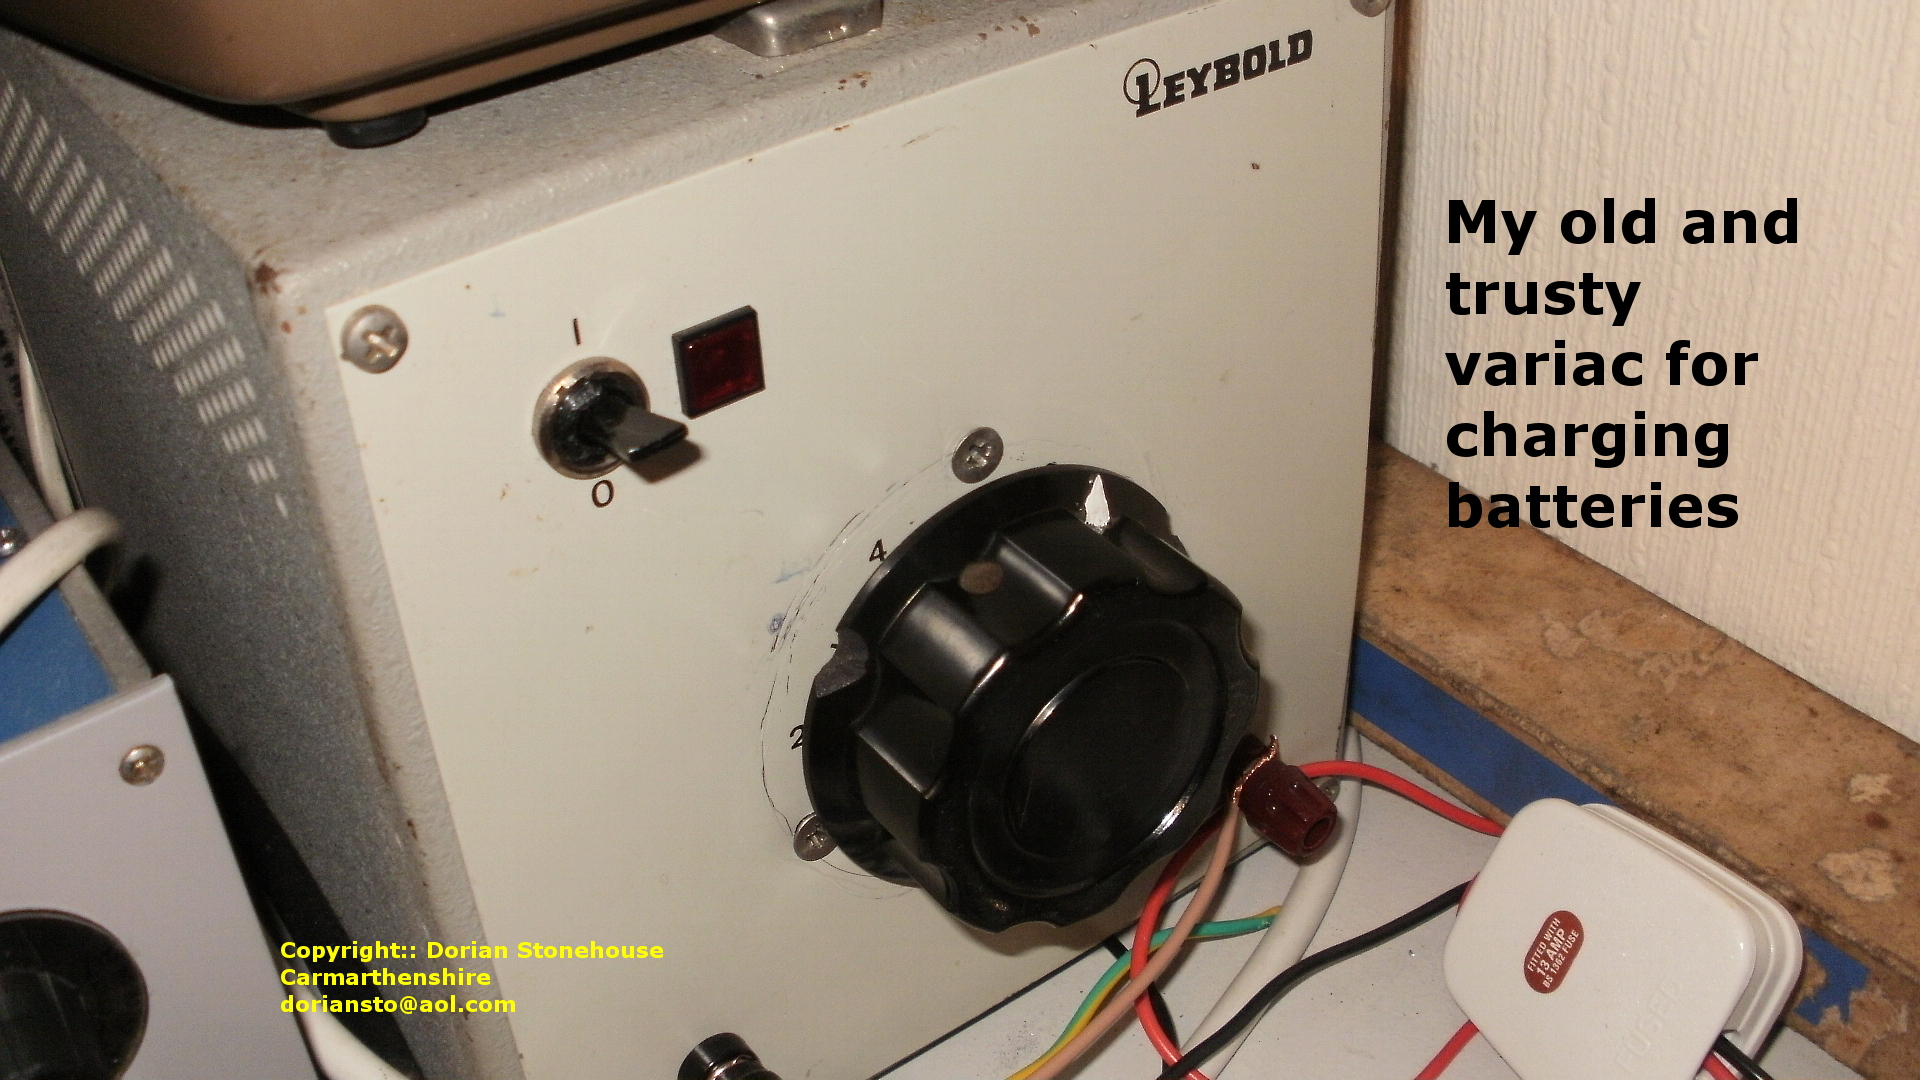 A variac transformer for connecting to the battery charger.